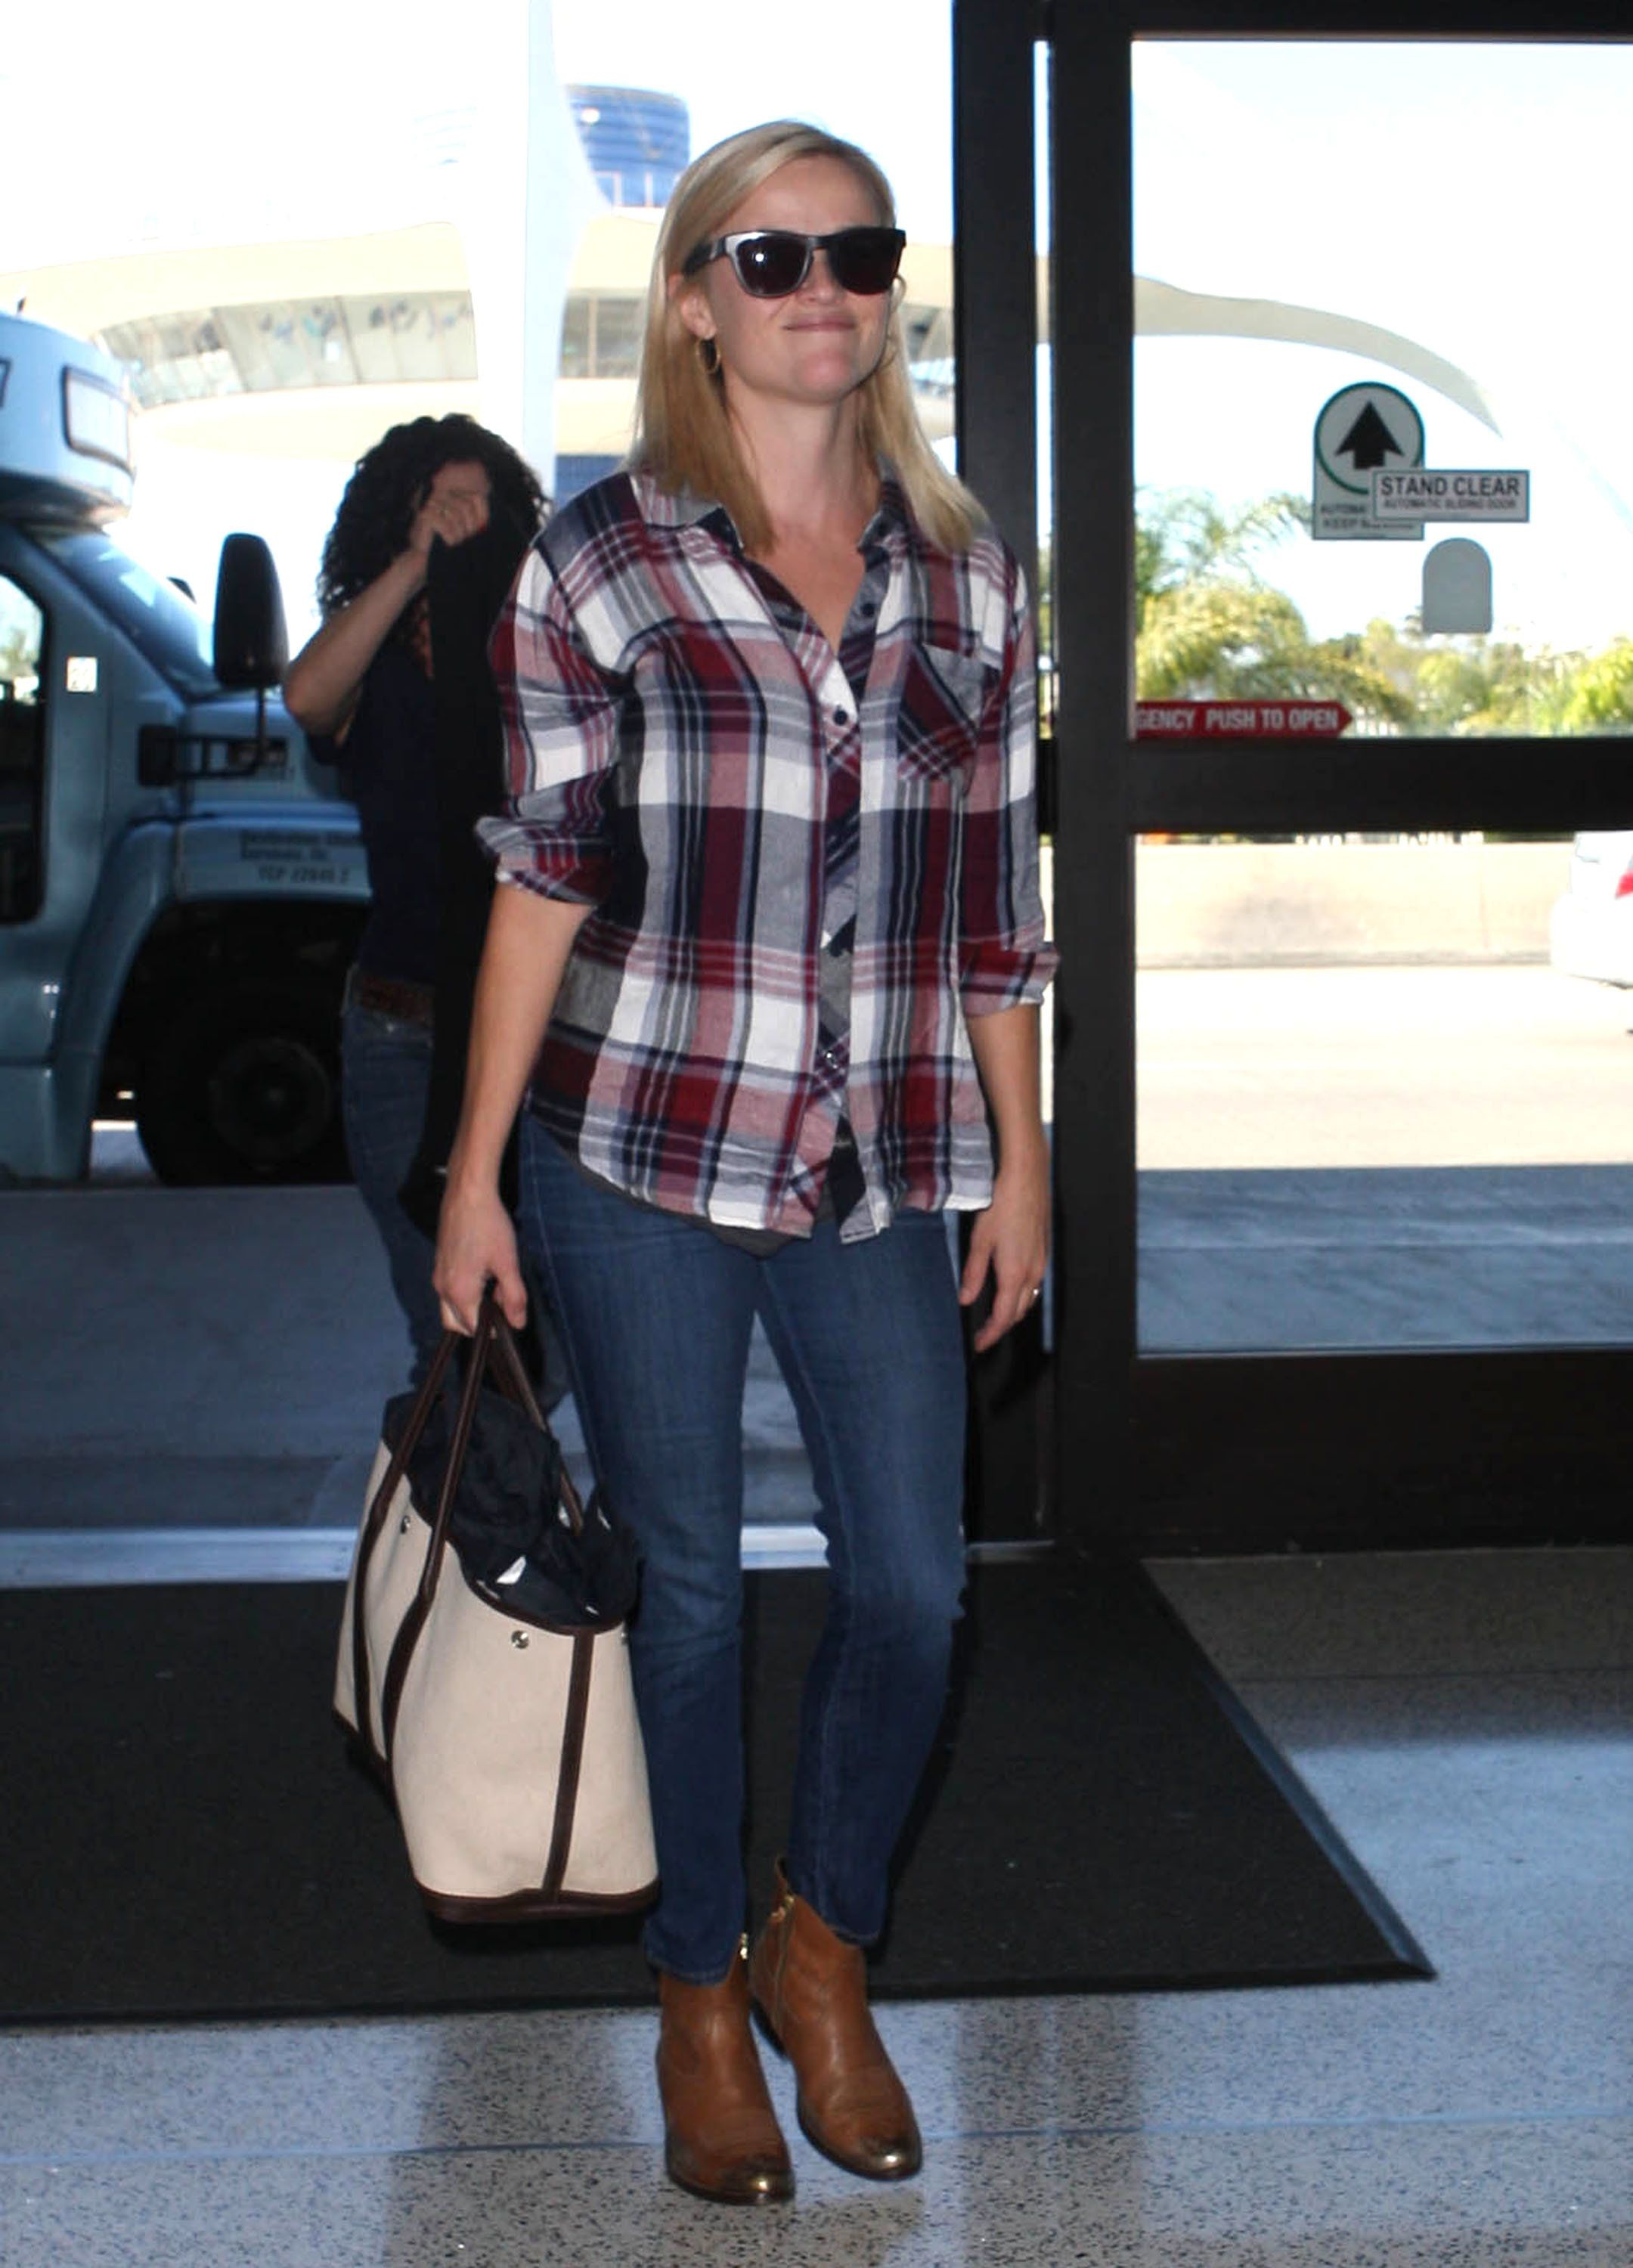 51209609 'Devils Knot' actress Reese Witherspoon departing on a flight at LAX airport in Los Angeles, California on September 16, 2013. FameFlynet, Inc - Beverly Hills, CA, USA - +1 (818) 307-4813